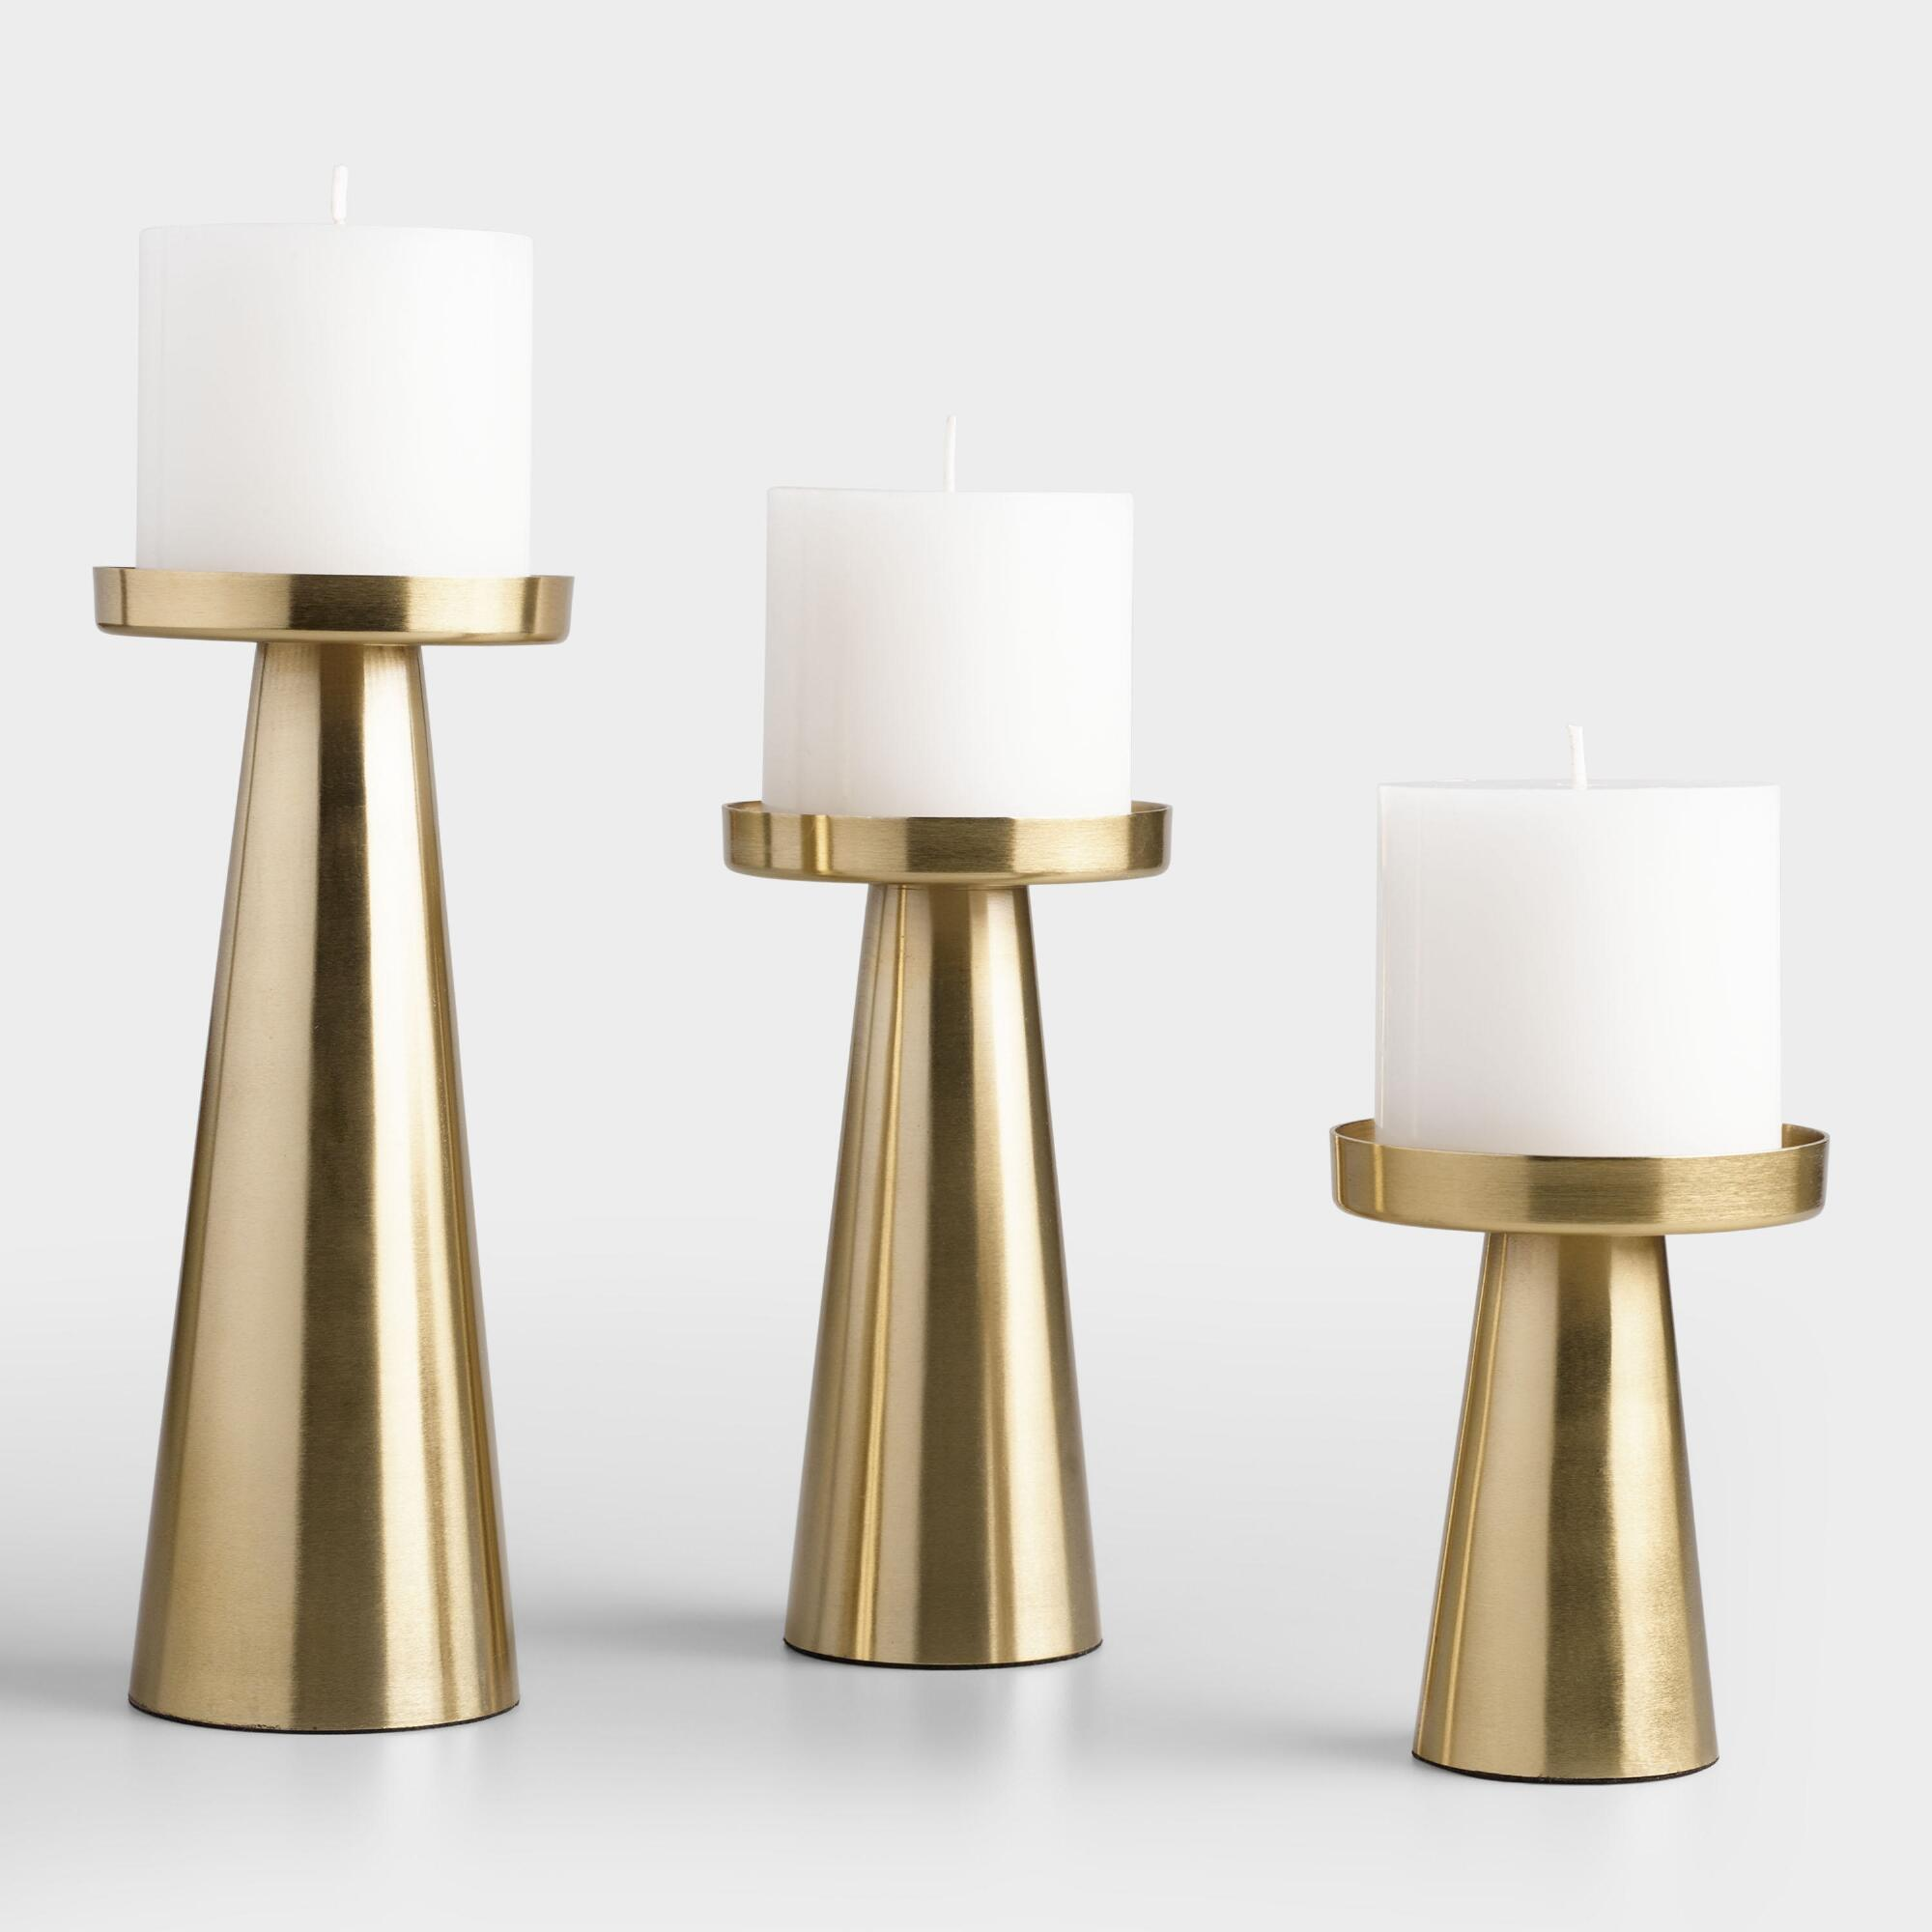 Brushed Gold Metal Contemporary Pillar Candleholder Small By World Market Small World Market Cost Plus